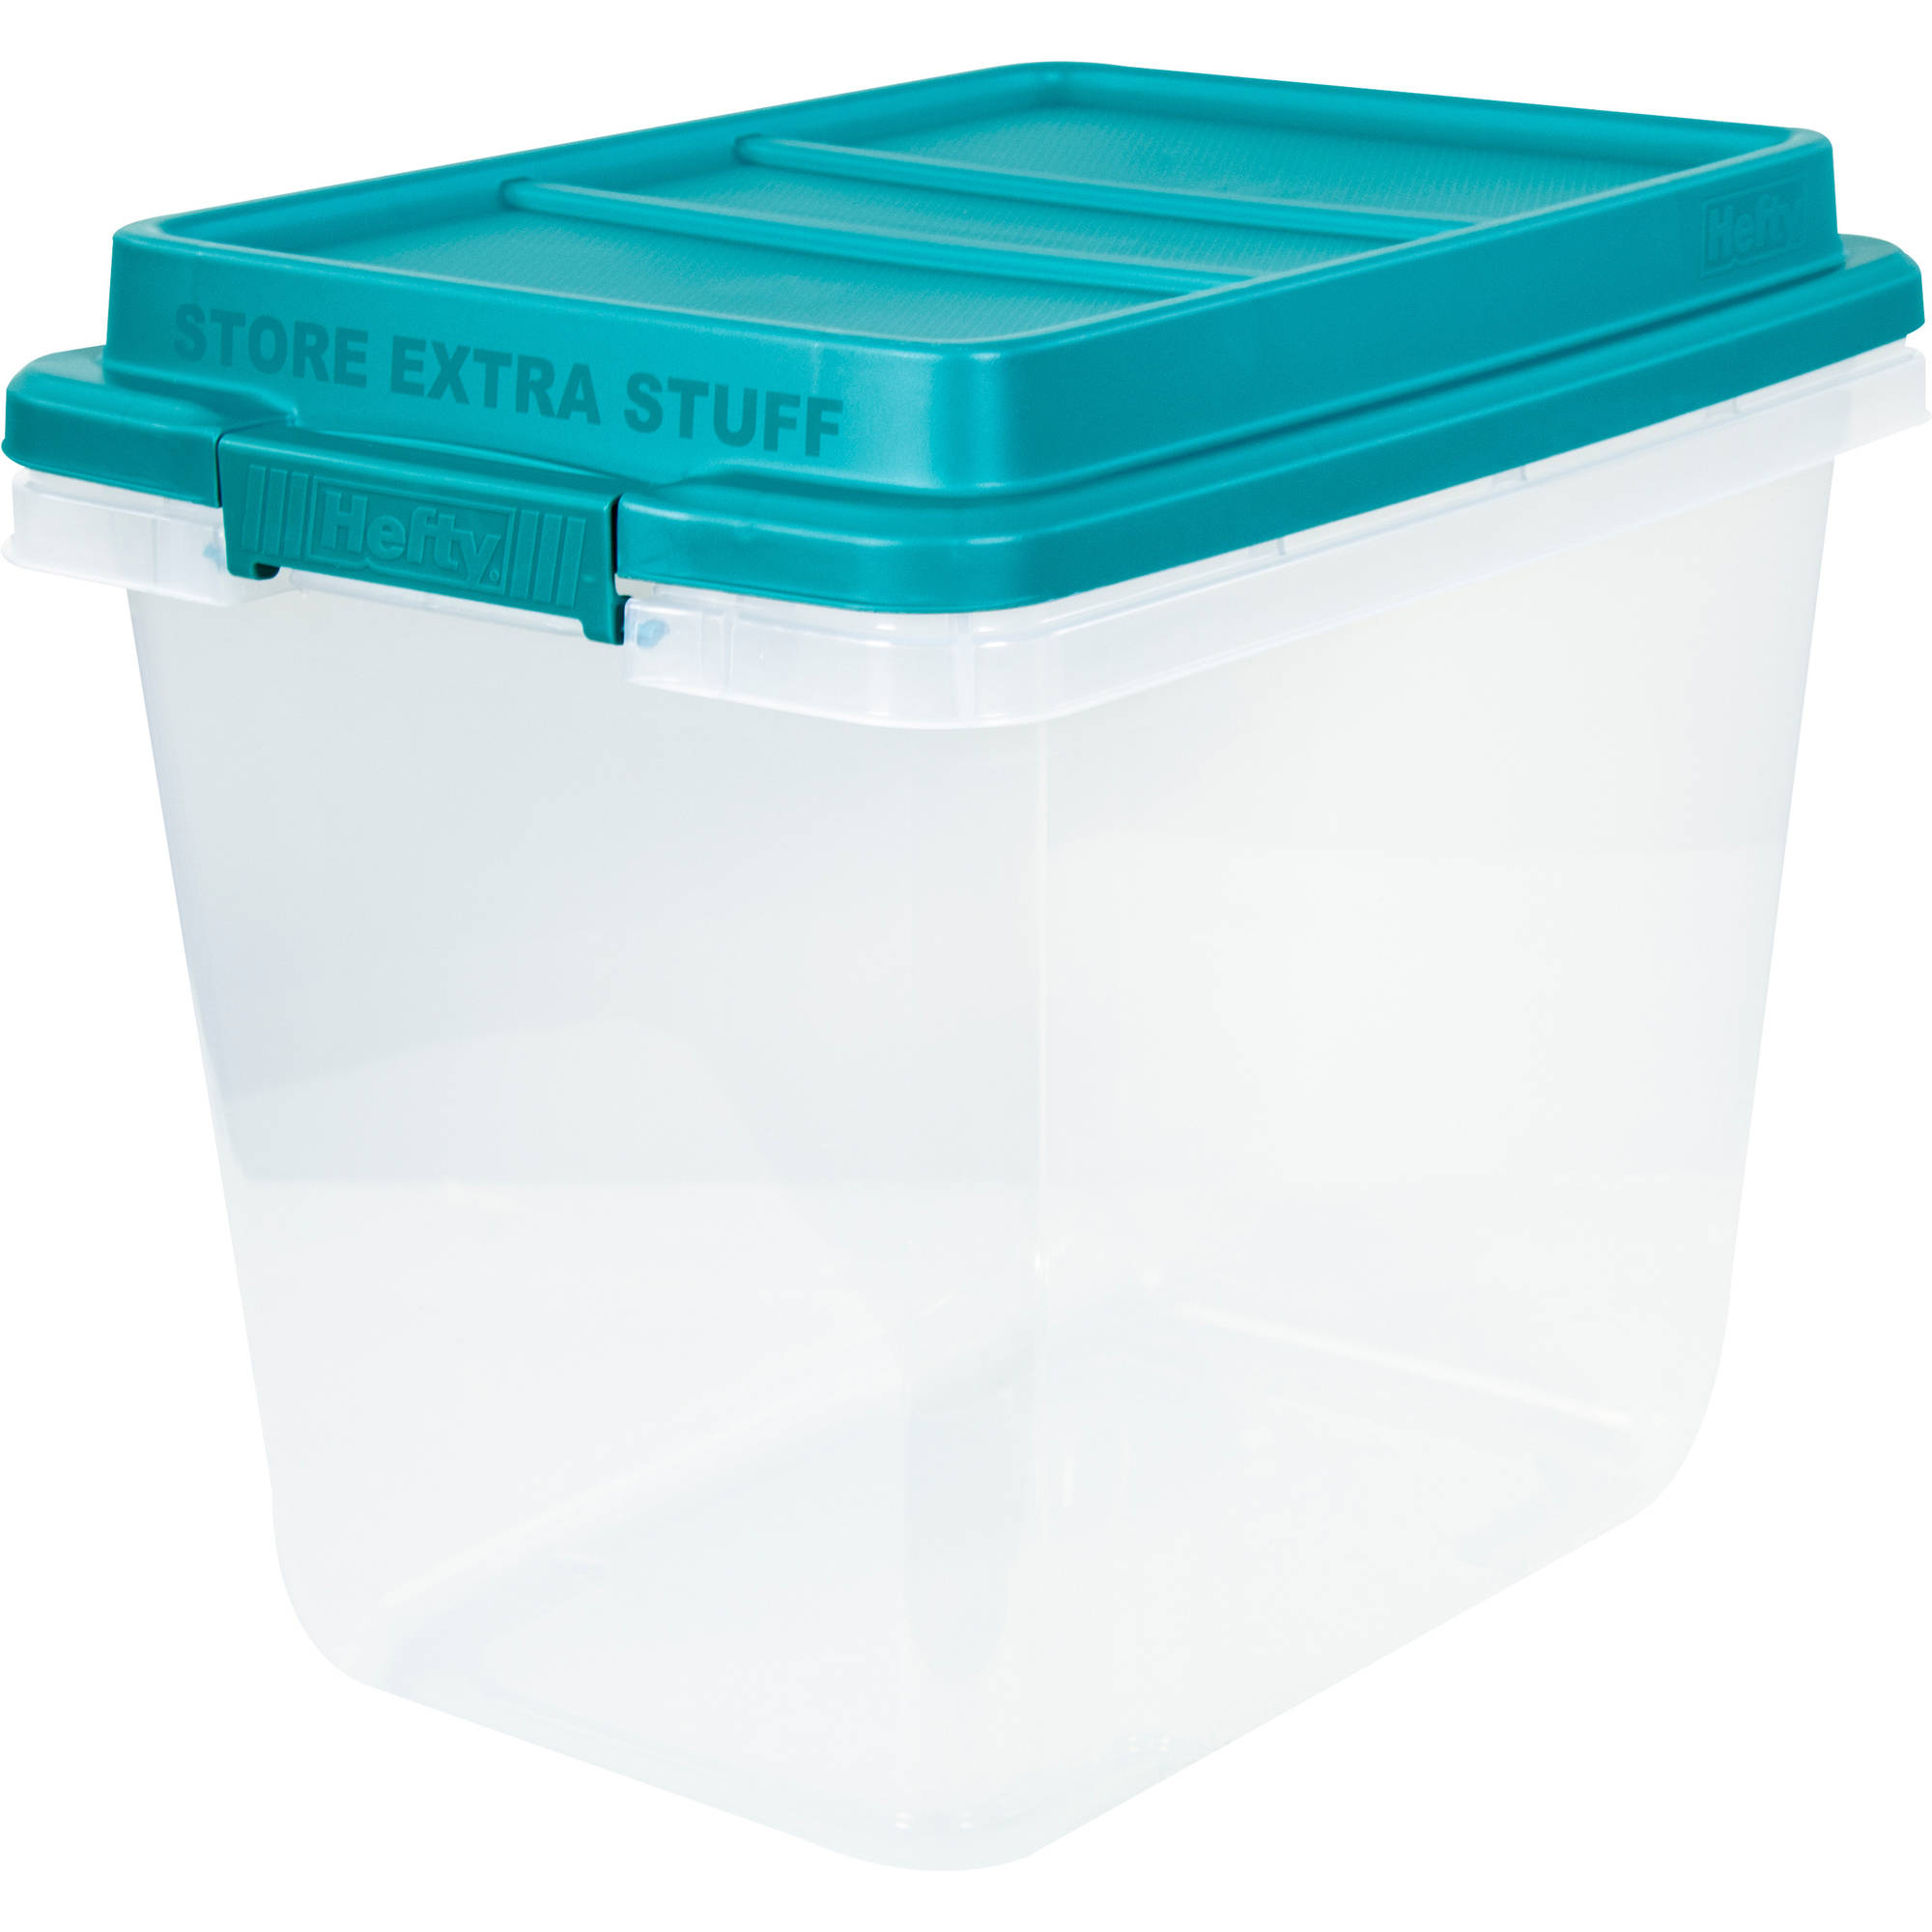 Hefty HI-RISE Storage Bins, 32 Qt. Stackable Bin with Latch, Teal Clear by HMS Mfg. Co.